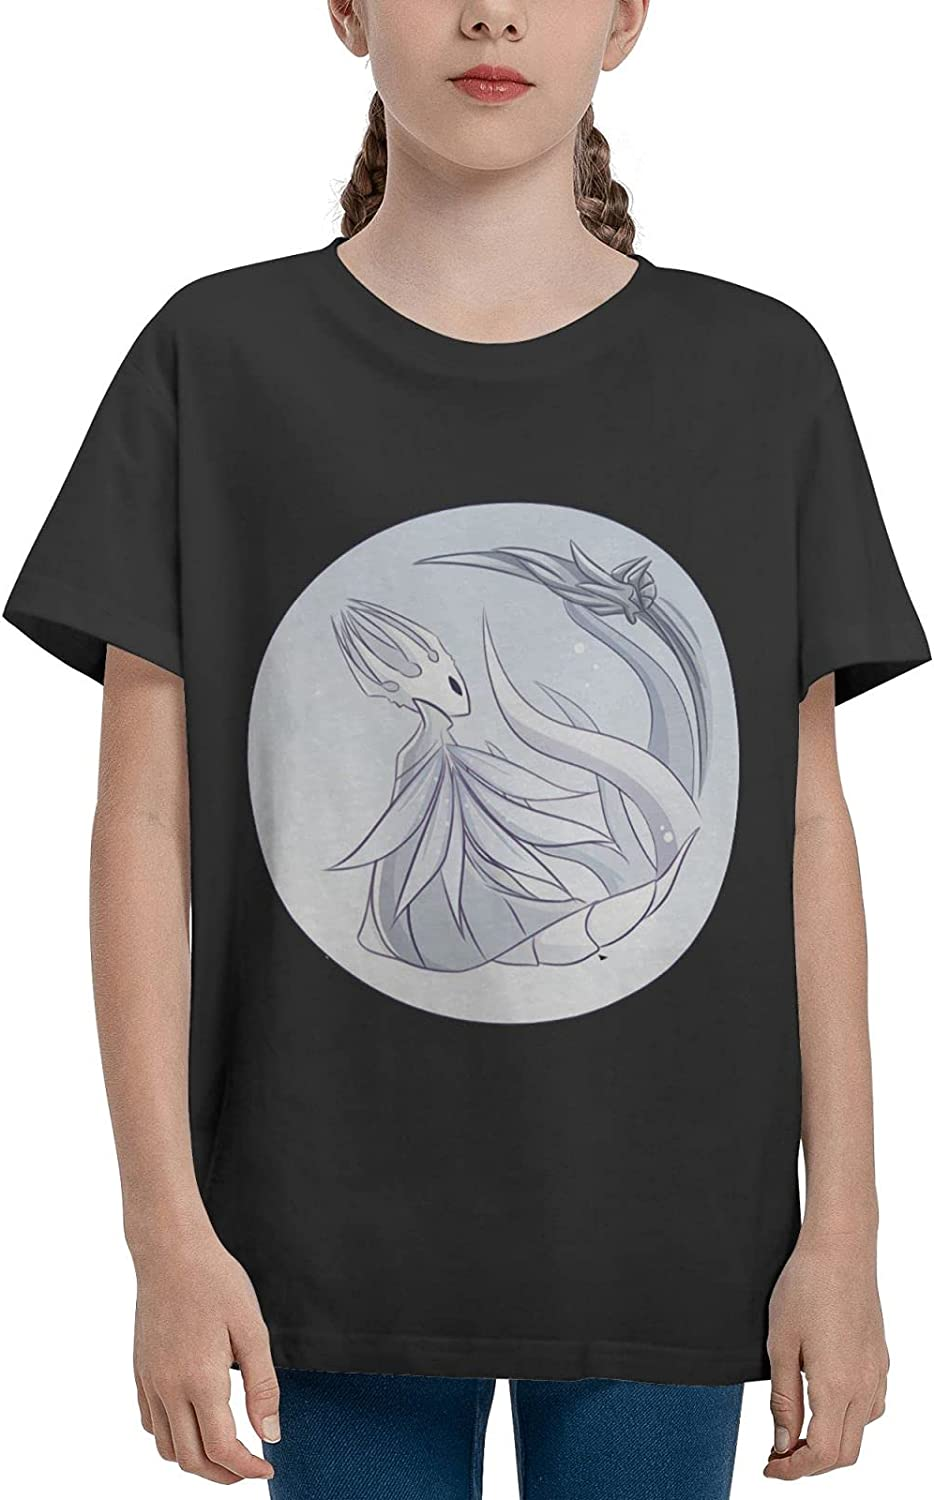 AROPEARTY Hollow Knight Teenage T-Shirt Girl Cotton Shirt Summer Casual Short Sleeves Tee